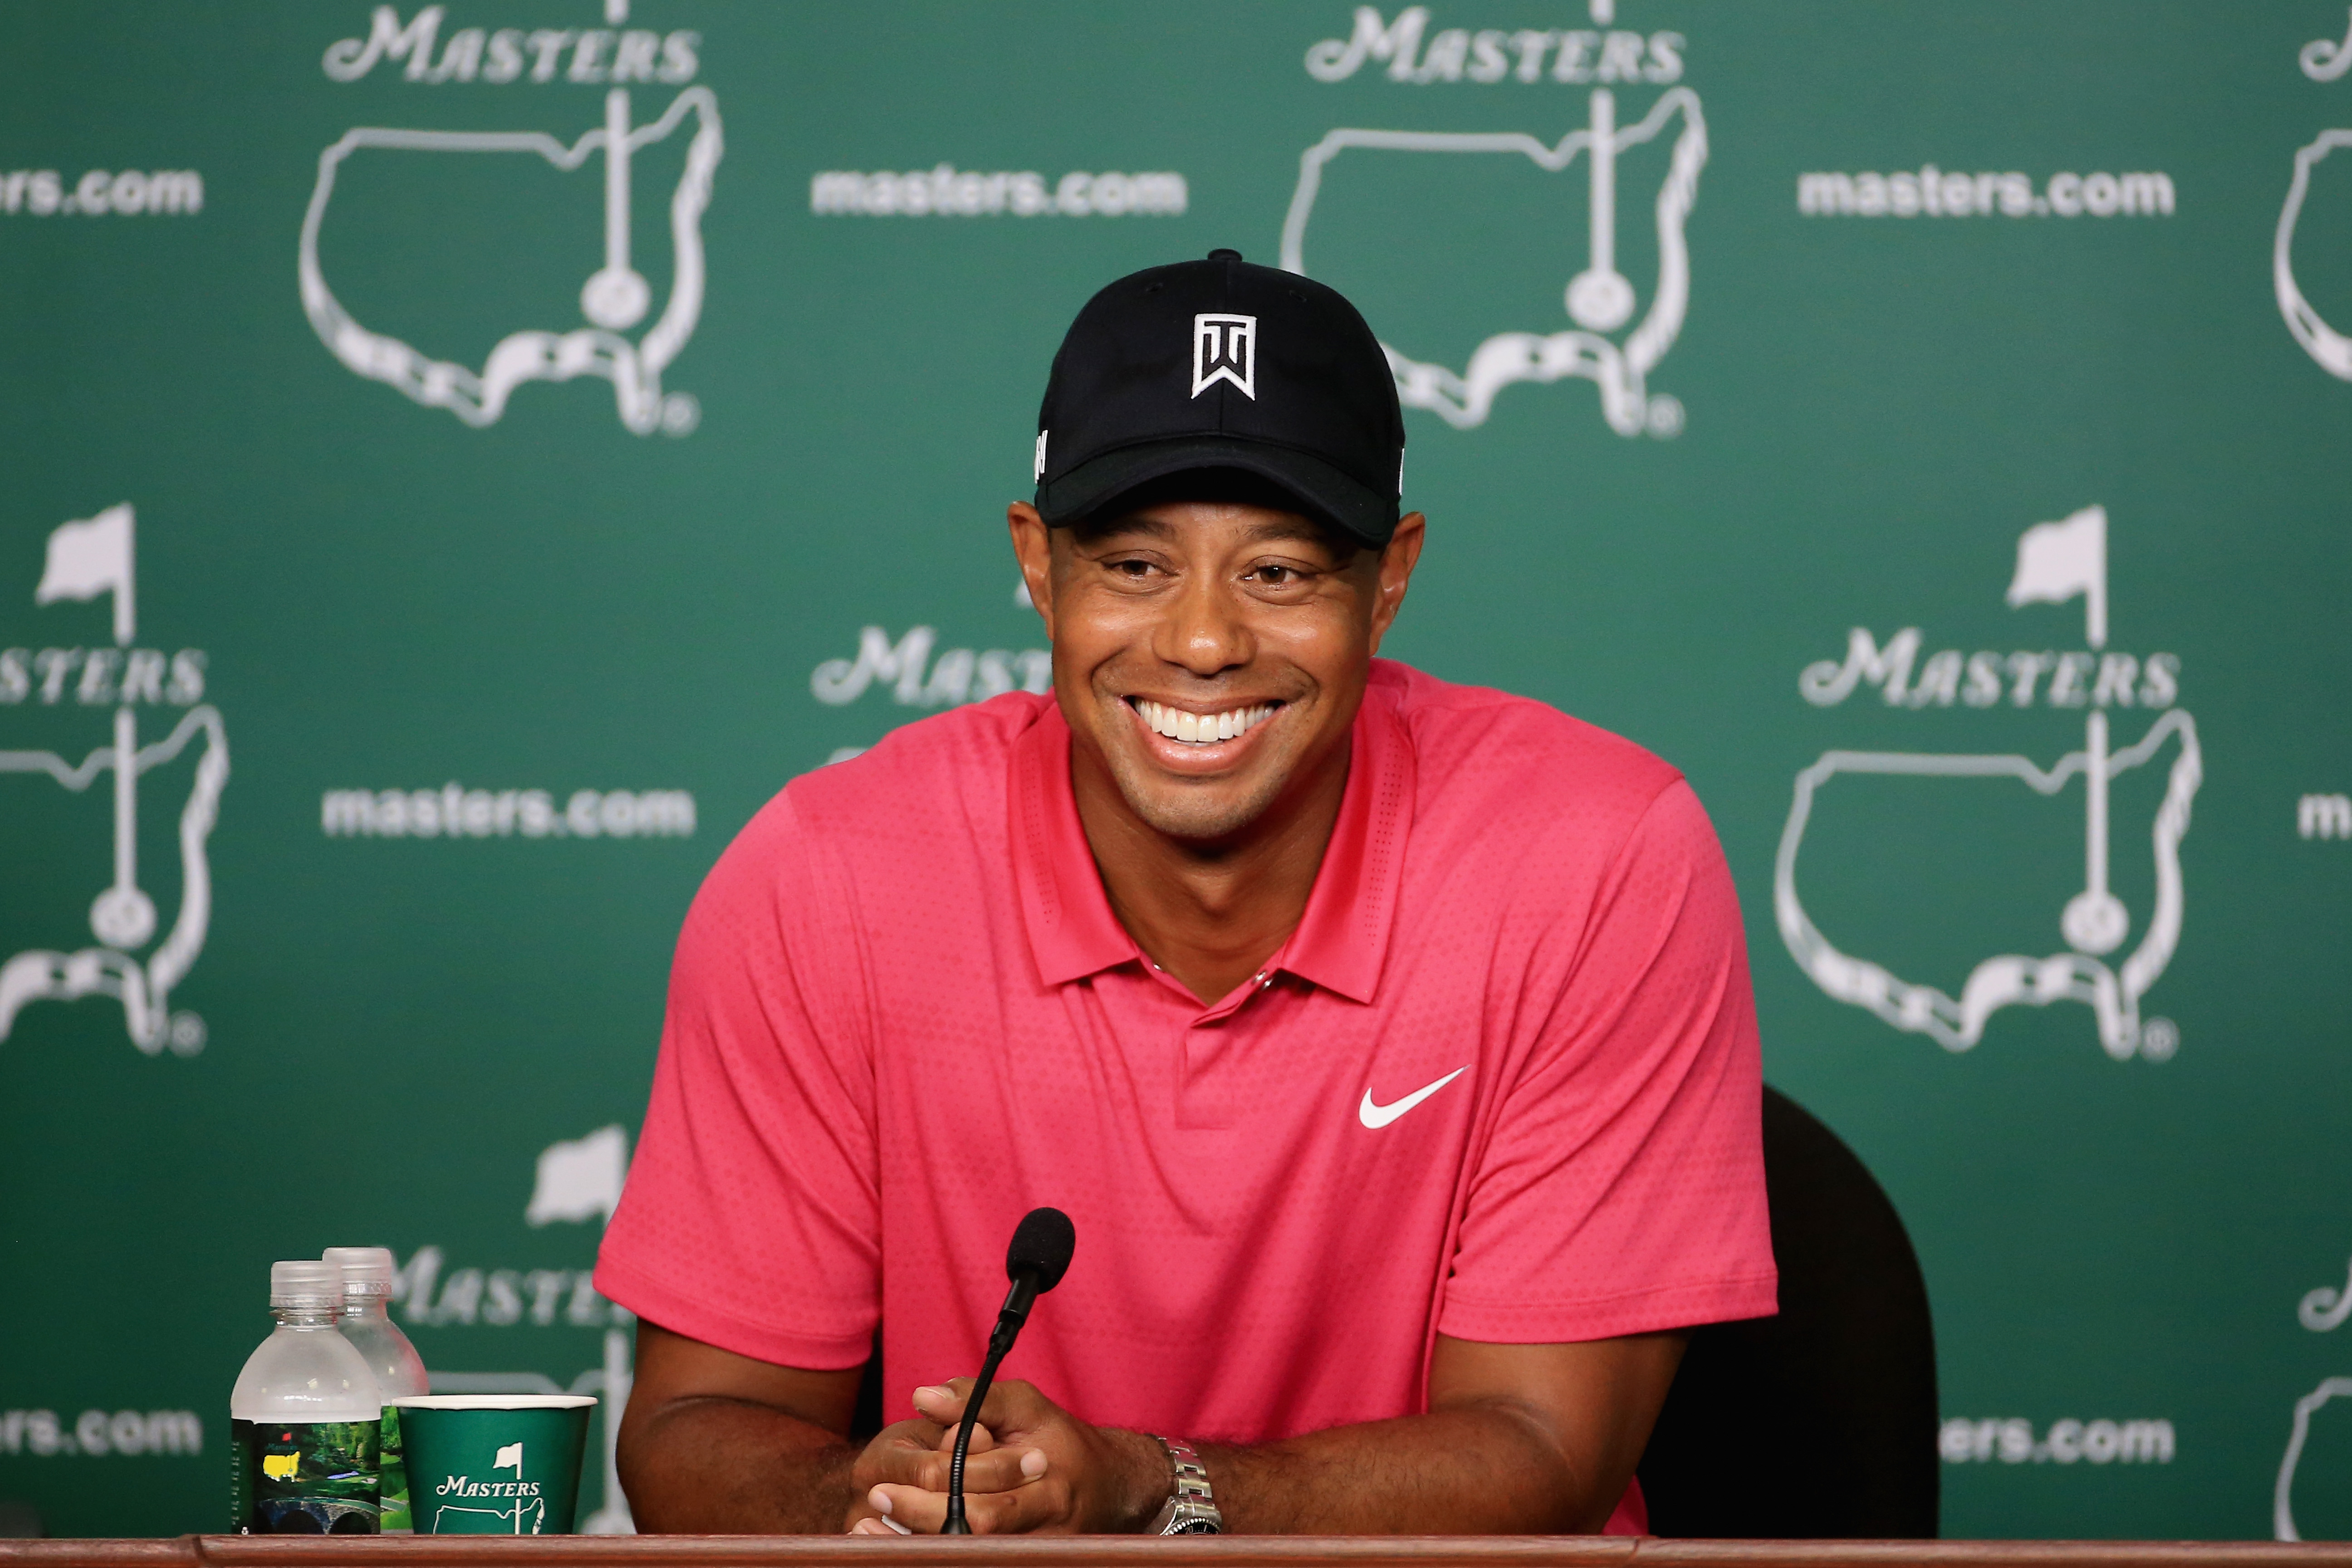 Woods presented a friendlier front at Augusta (Photo: Getty Images)